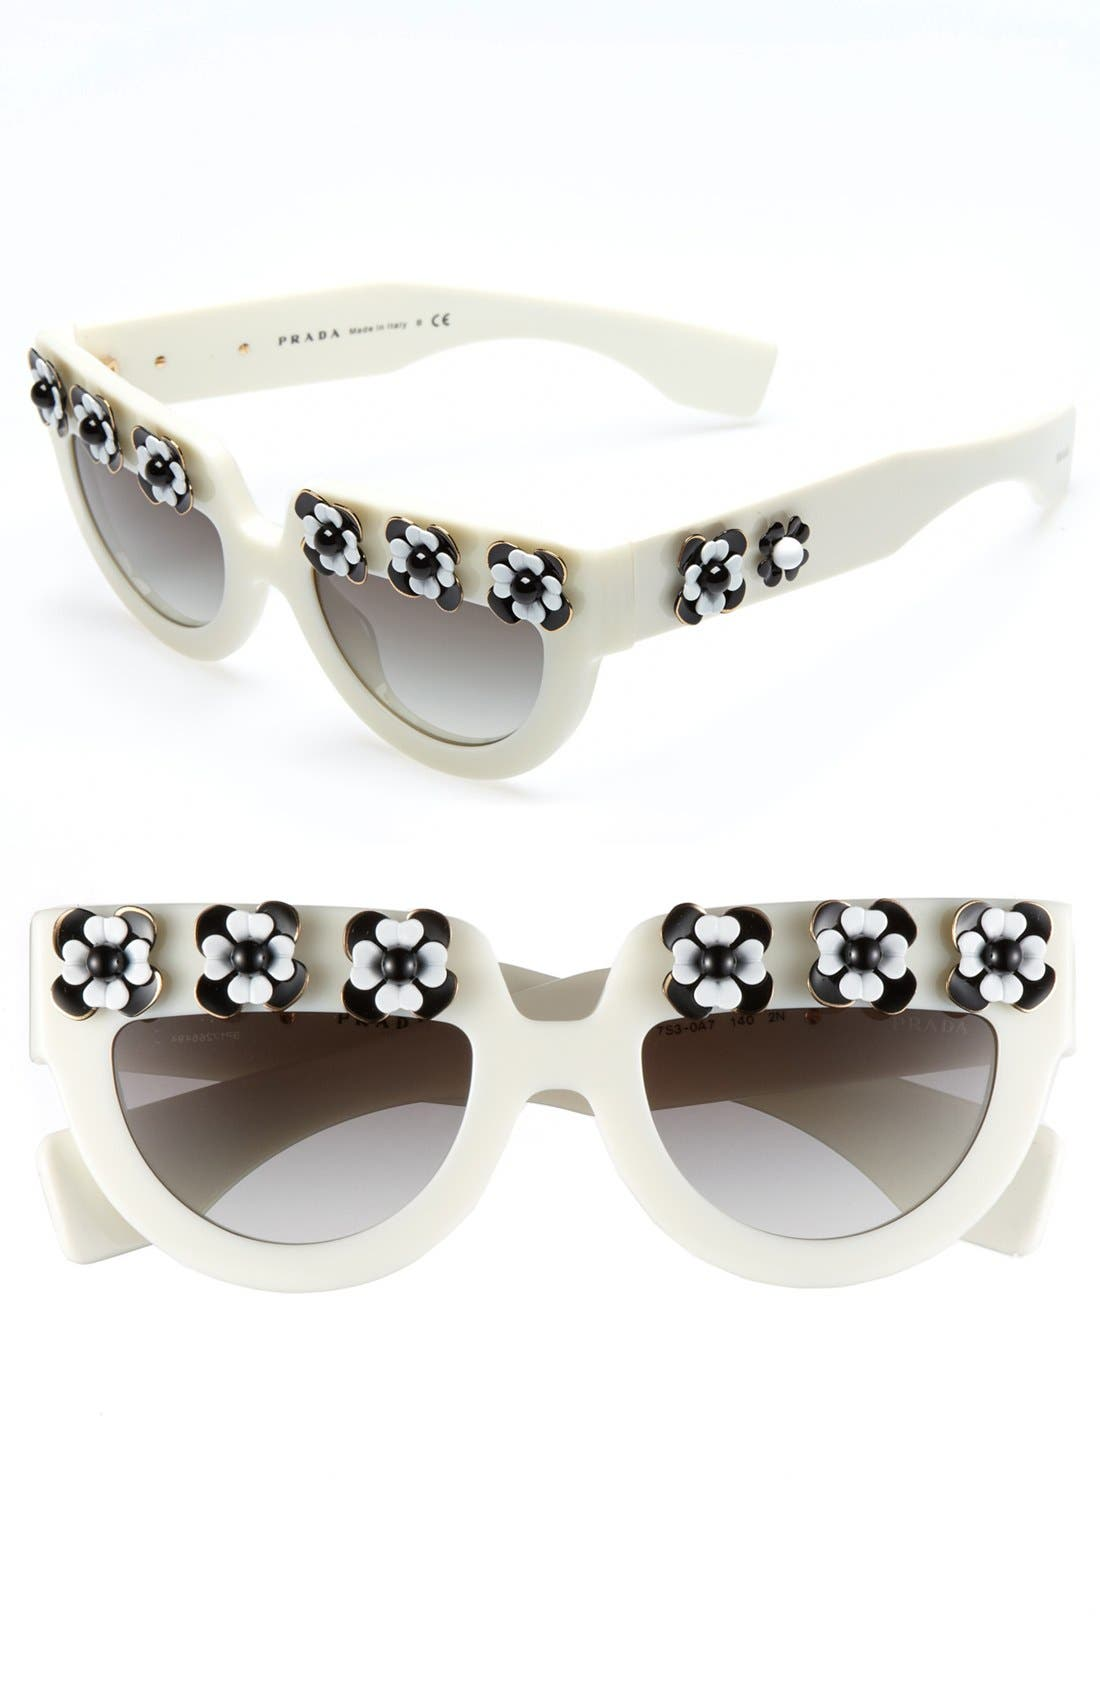 Main Image - Prada 'Irregular Flowers' 50mm Sunglasses